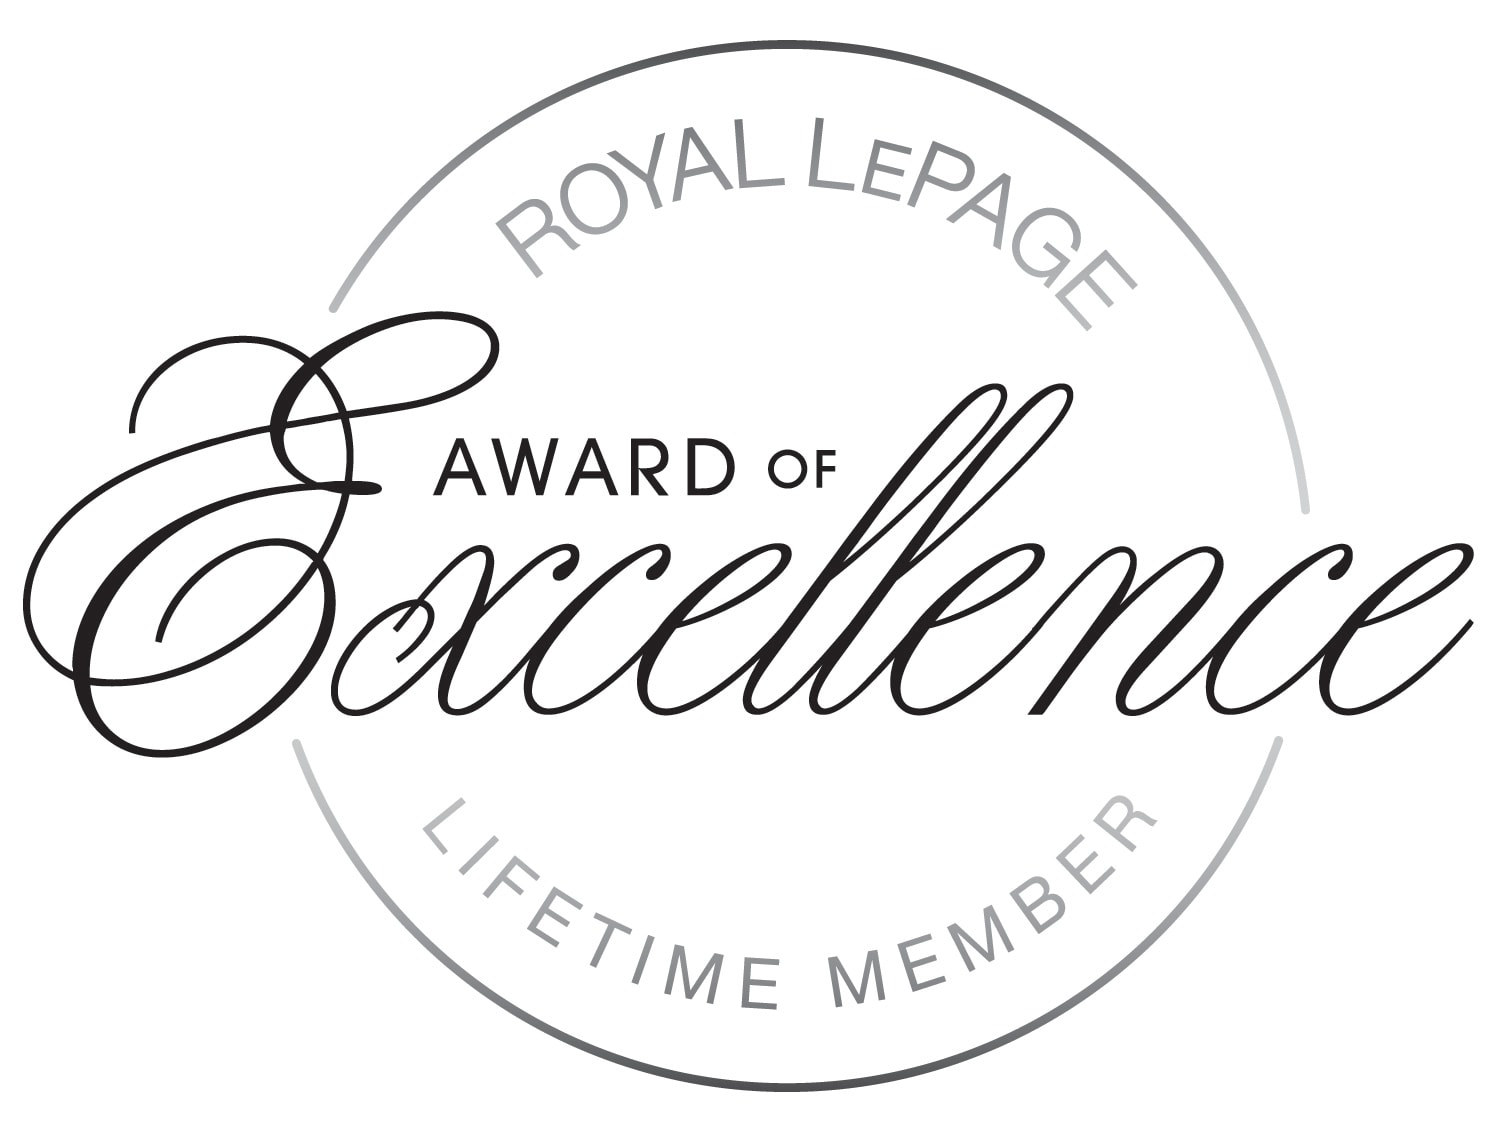 Excellence Award | Team Zold Real Estate Awards